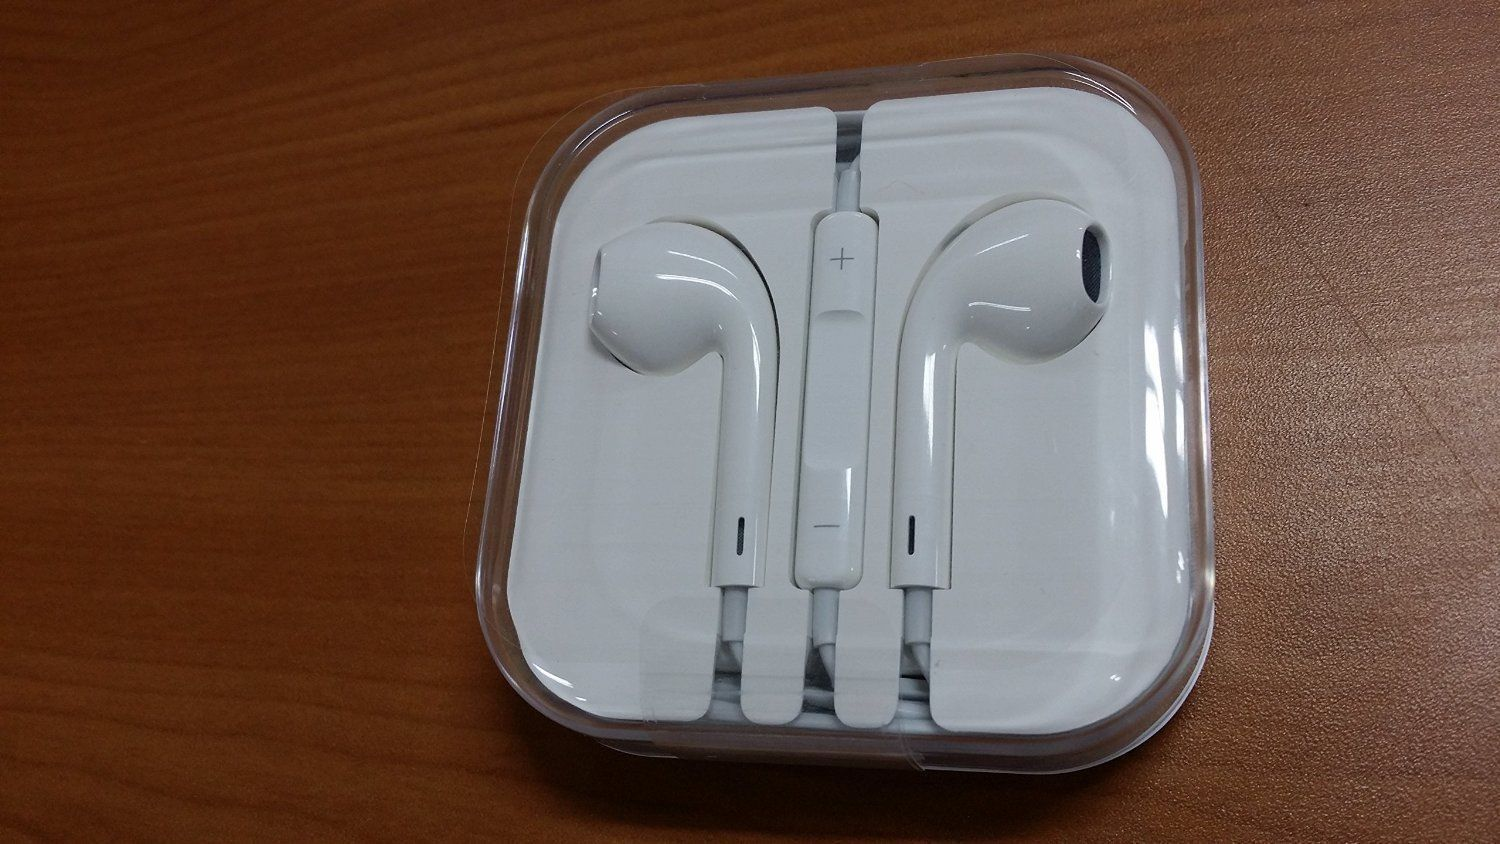 Authentic apple earphones iphone 6 - pink earphones apple